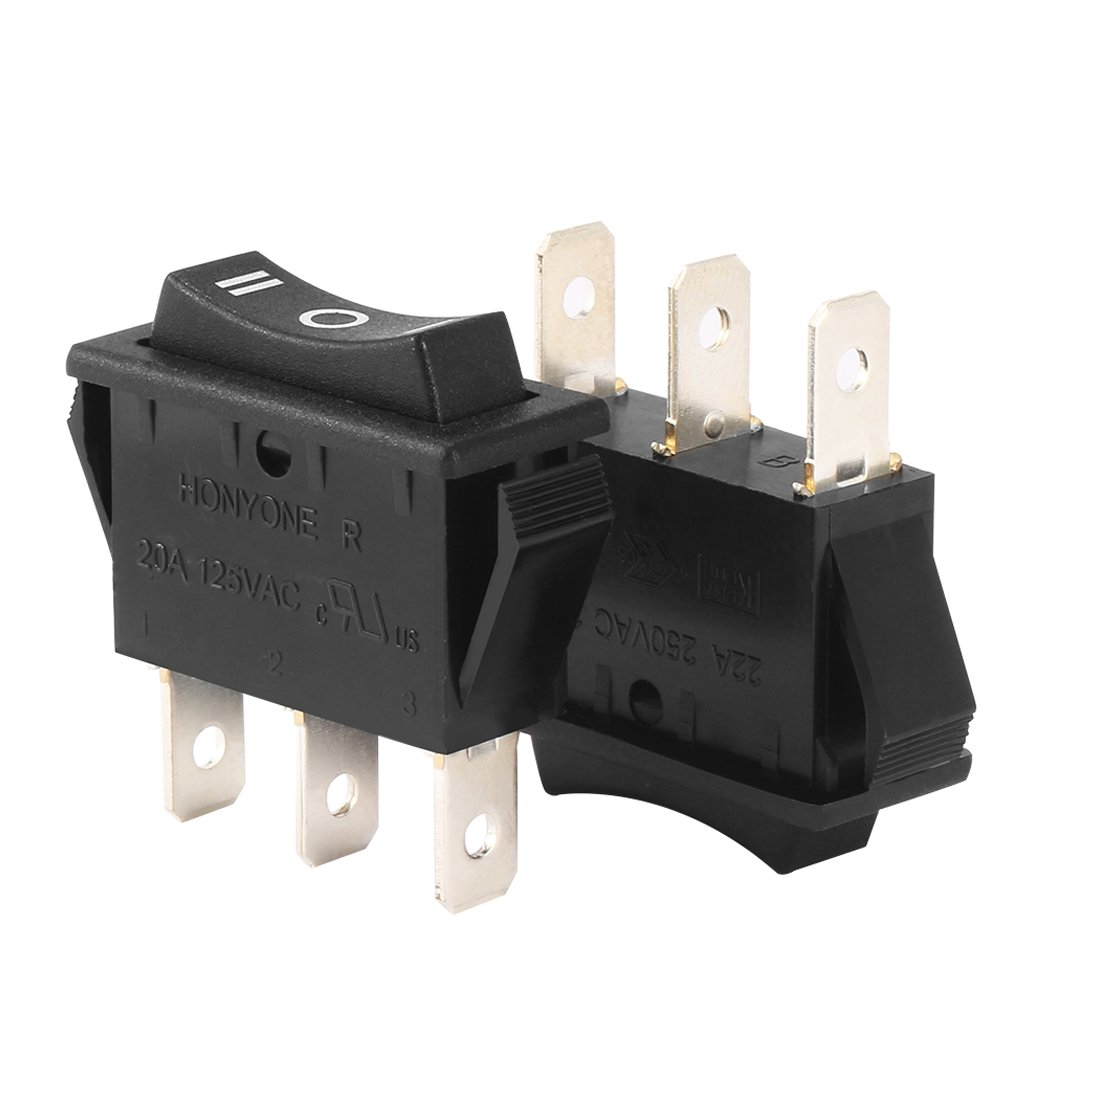 Aexit AC 20A/125V Relays 22A/250V SPDT 3P On/Off/On 3 Position Boat Rocker Switch Black Antitheft UL Listed